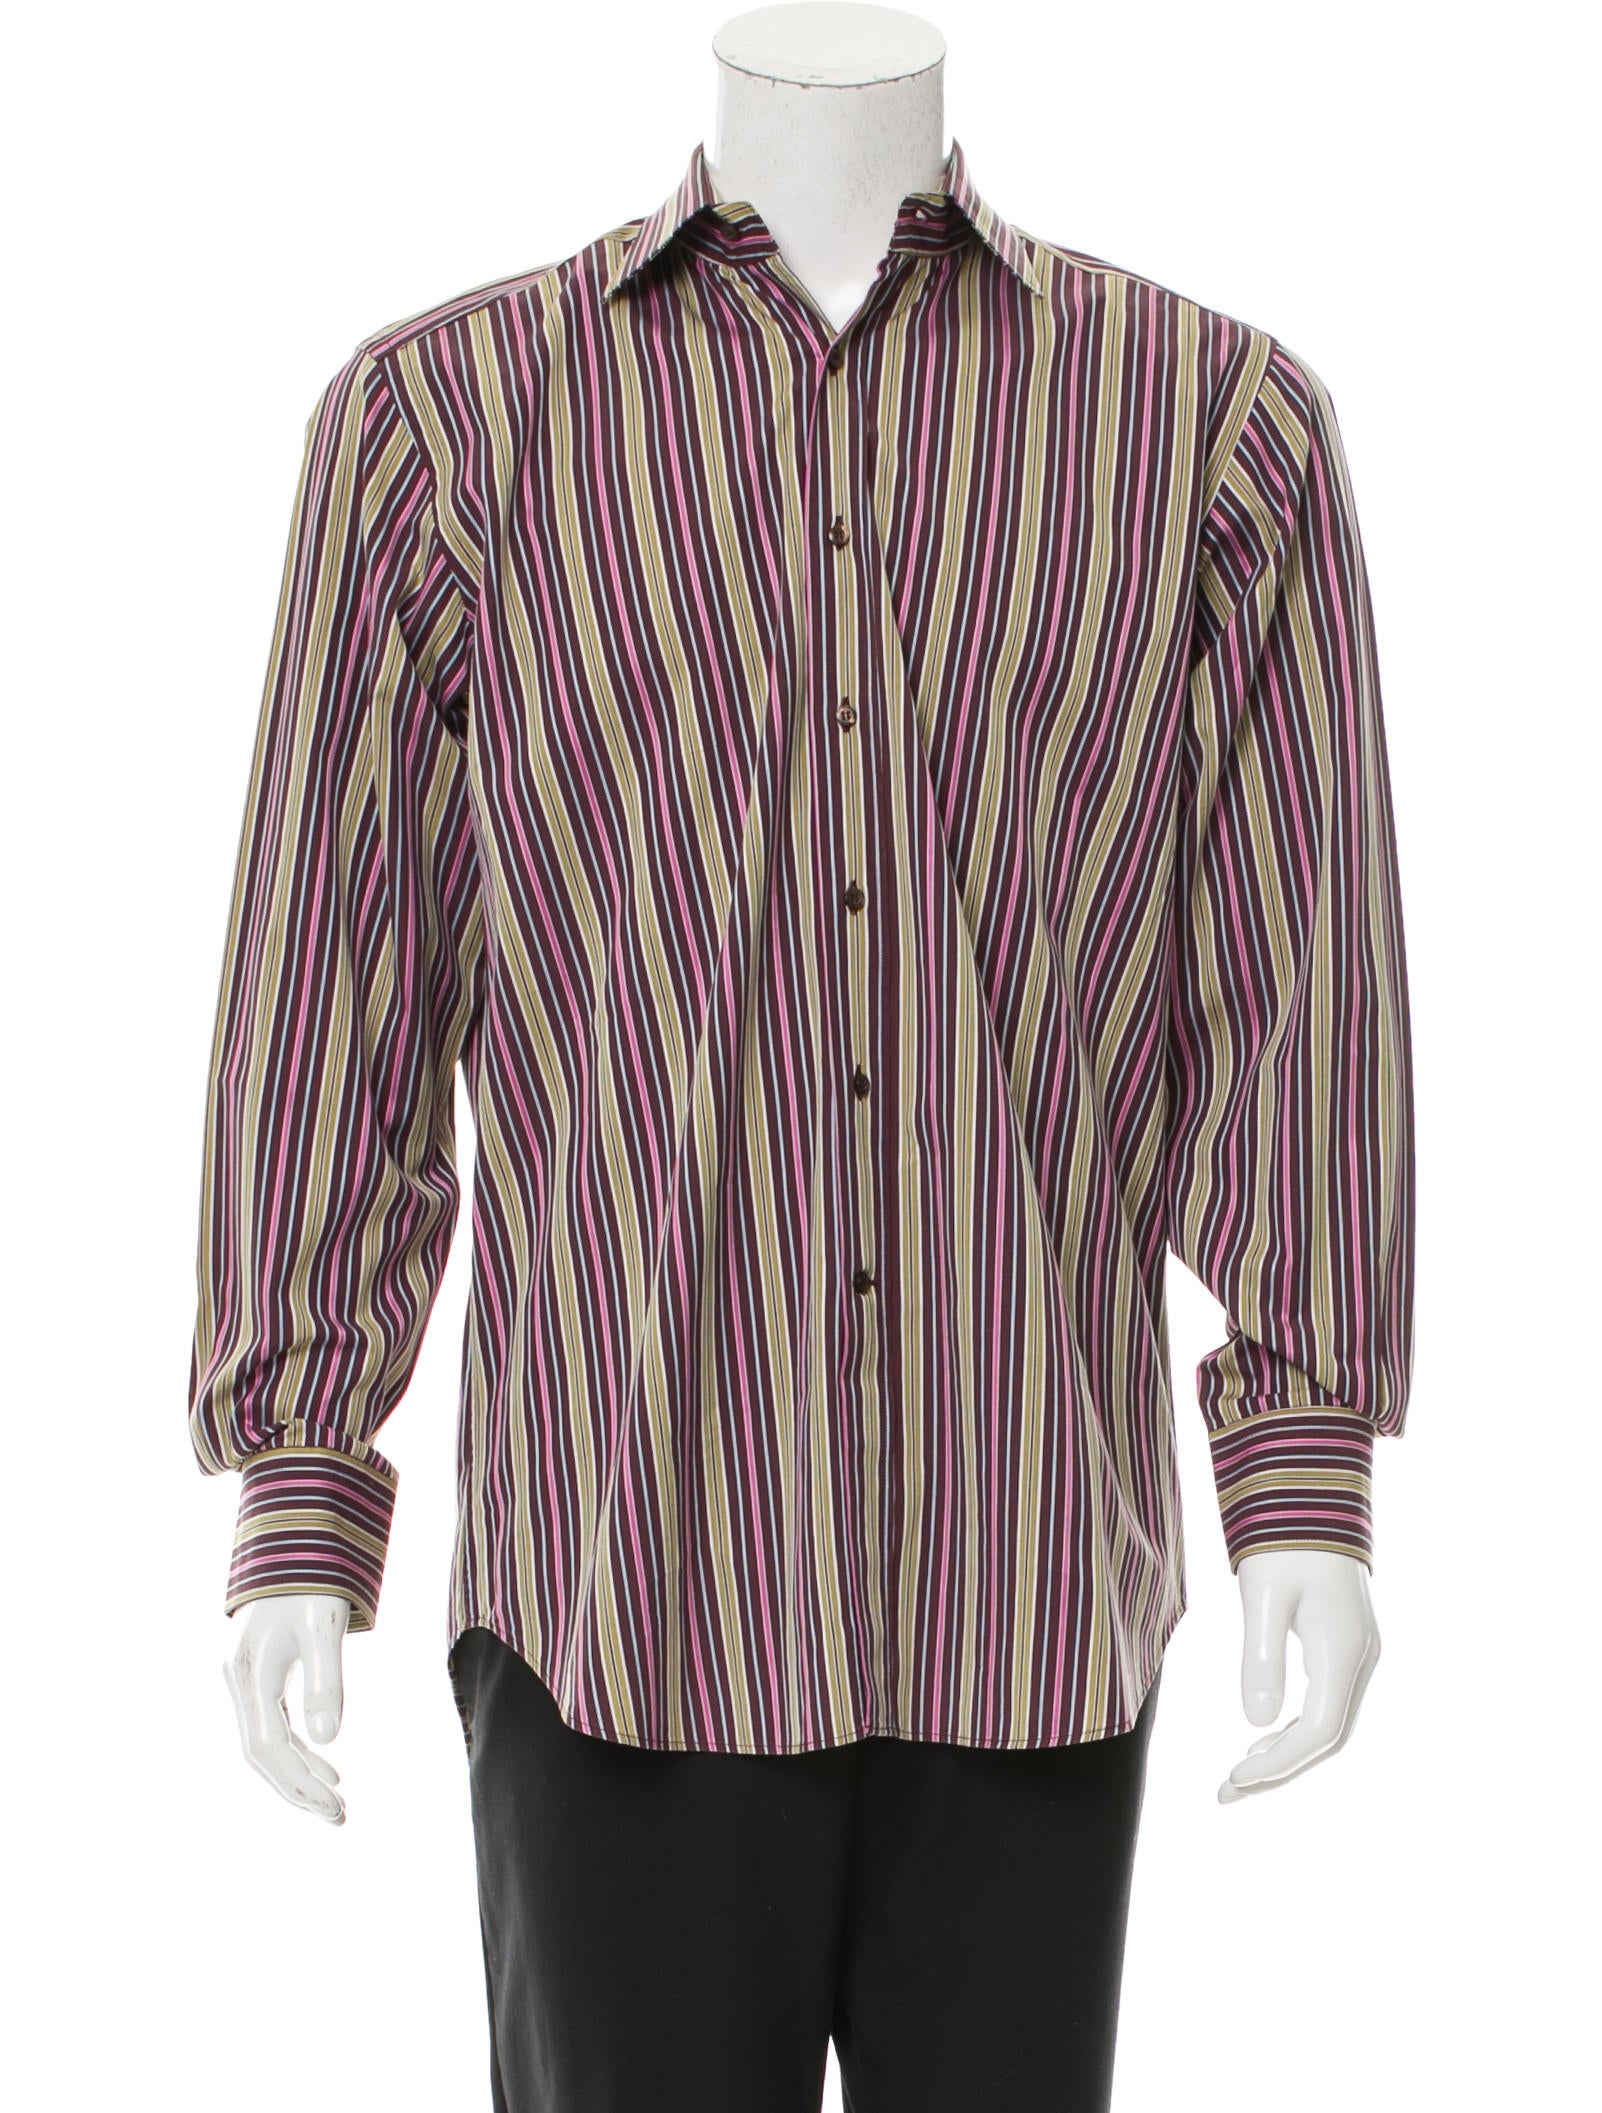 Etro striped button up shirt clothing etr50791 the for Striped button up shirt mens